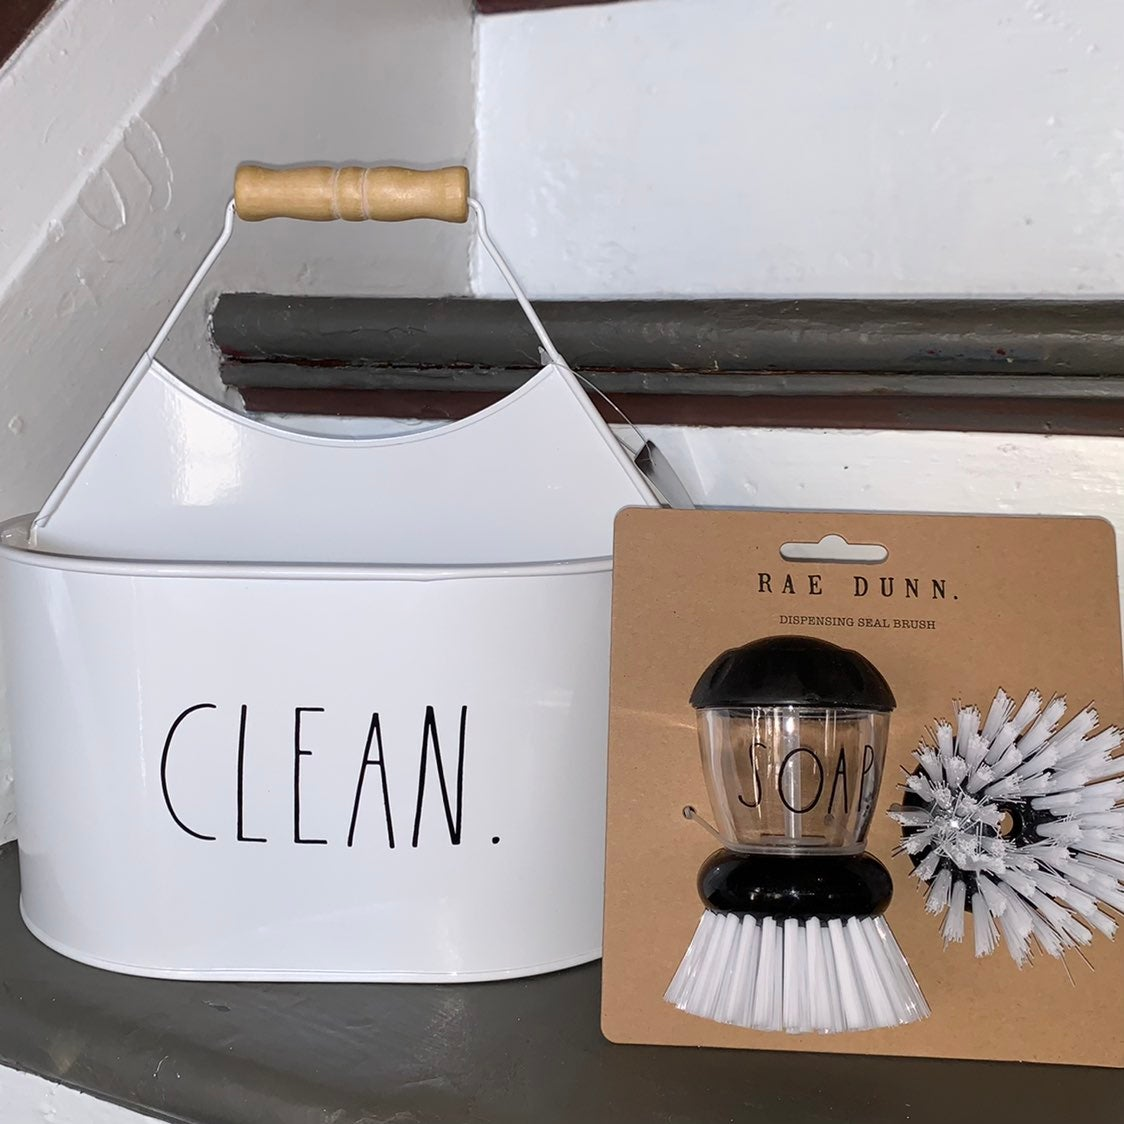 Rae Dunn CLEAN Caddy with SOAP Brush